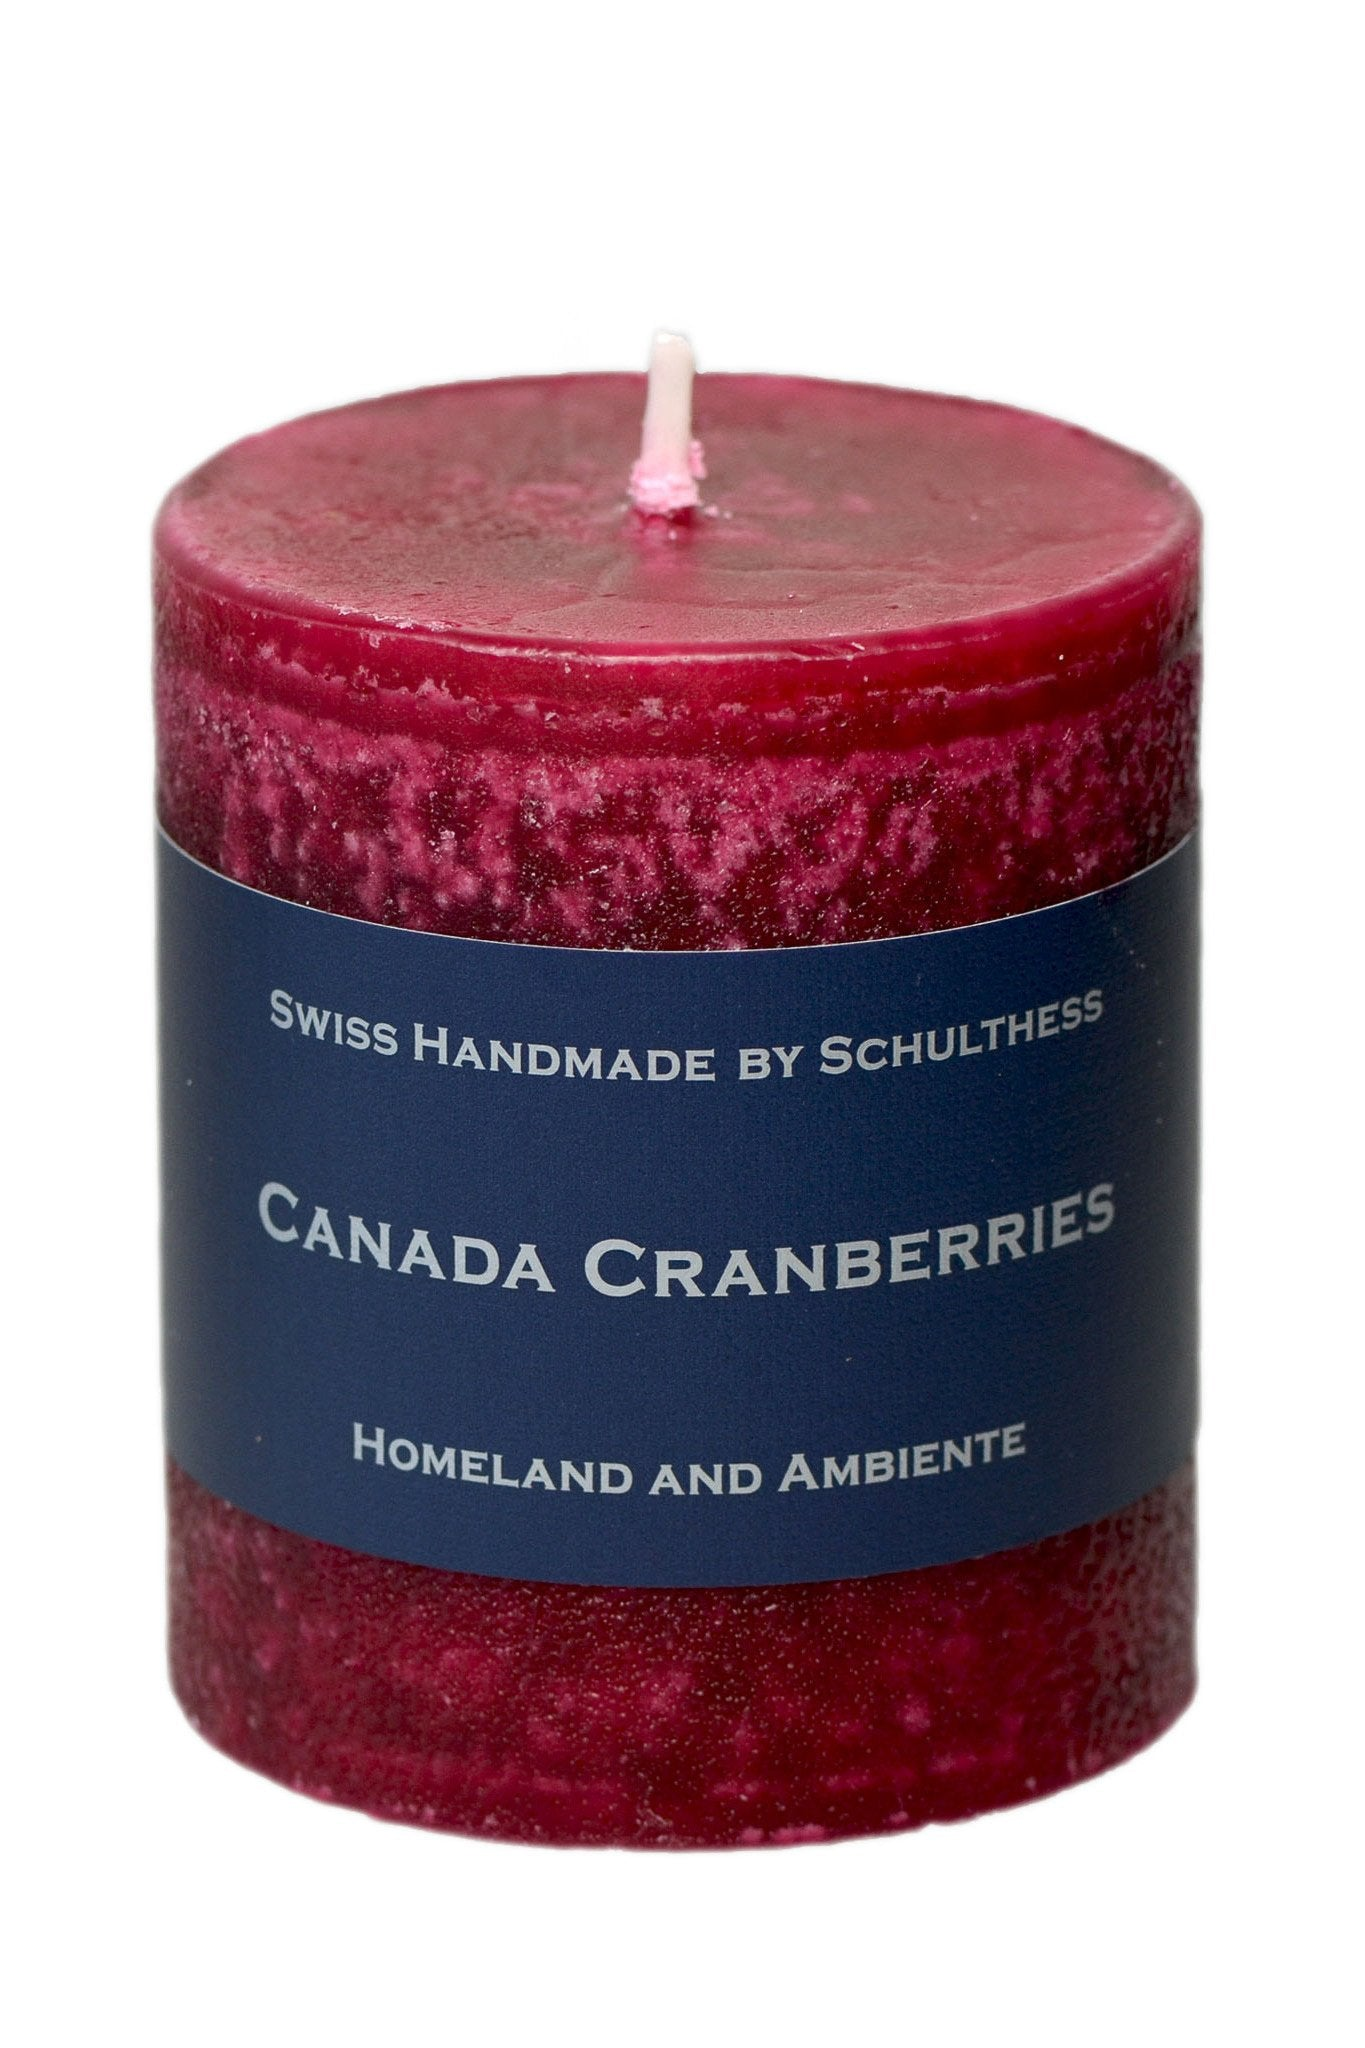 Schulthess Duftkerze, Canada Cranberries, Ø 70 mm Höhe 120 mm